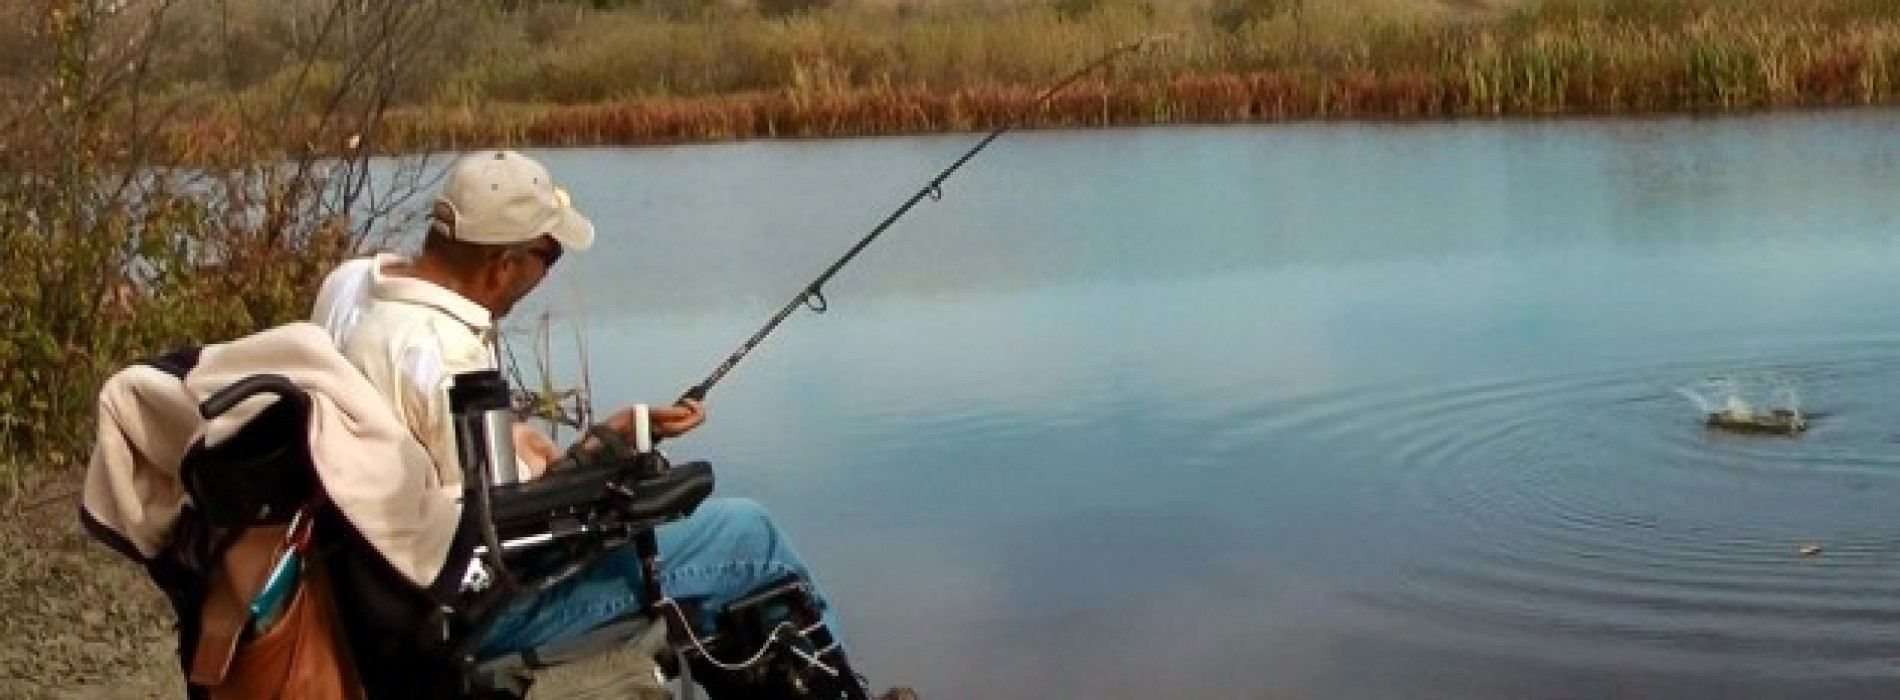 Adaptive fishing in the great outdoors